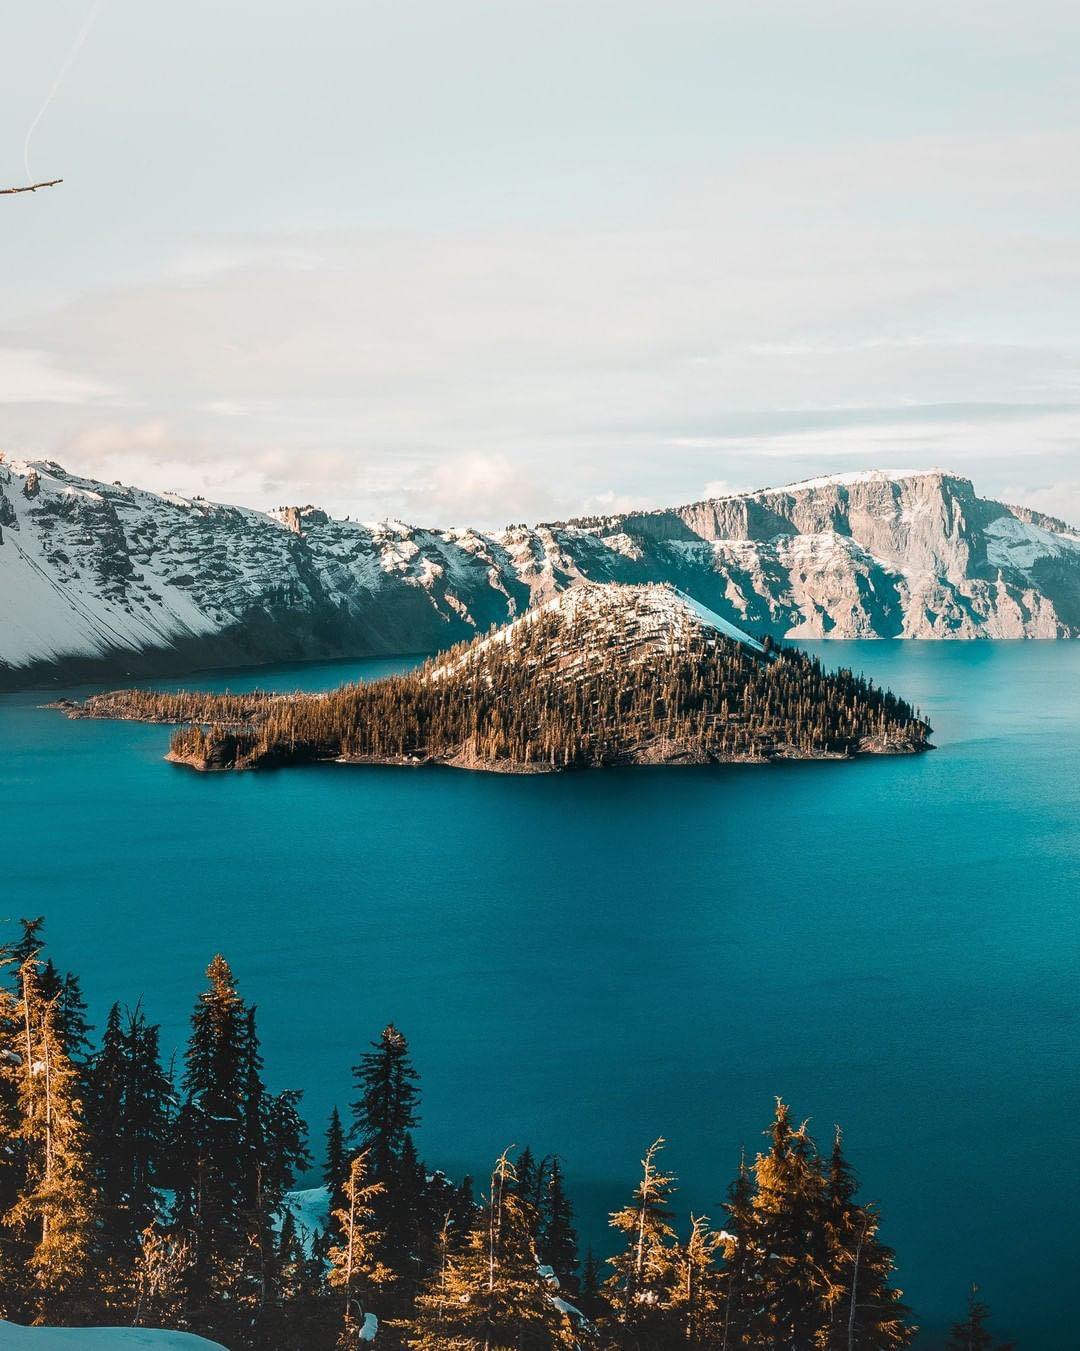 Cruise-America-RV-Rental-for-Crater-Lake-National-Park-jeffhopper.jpg